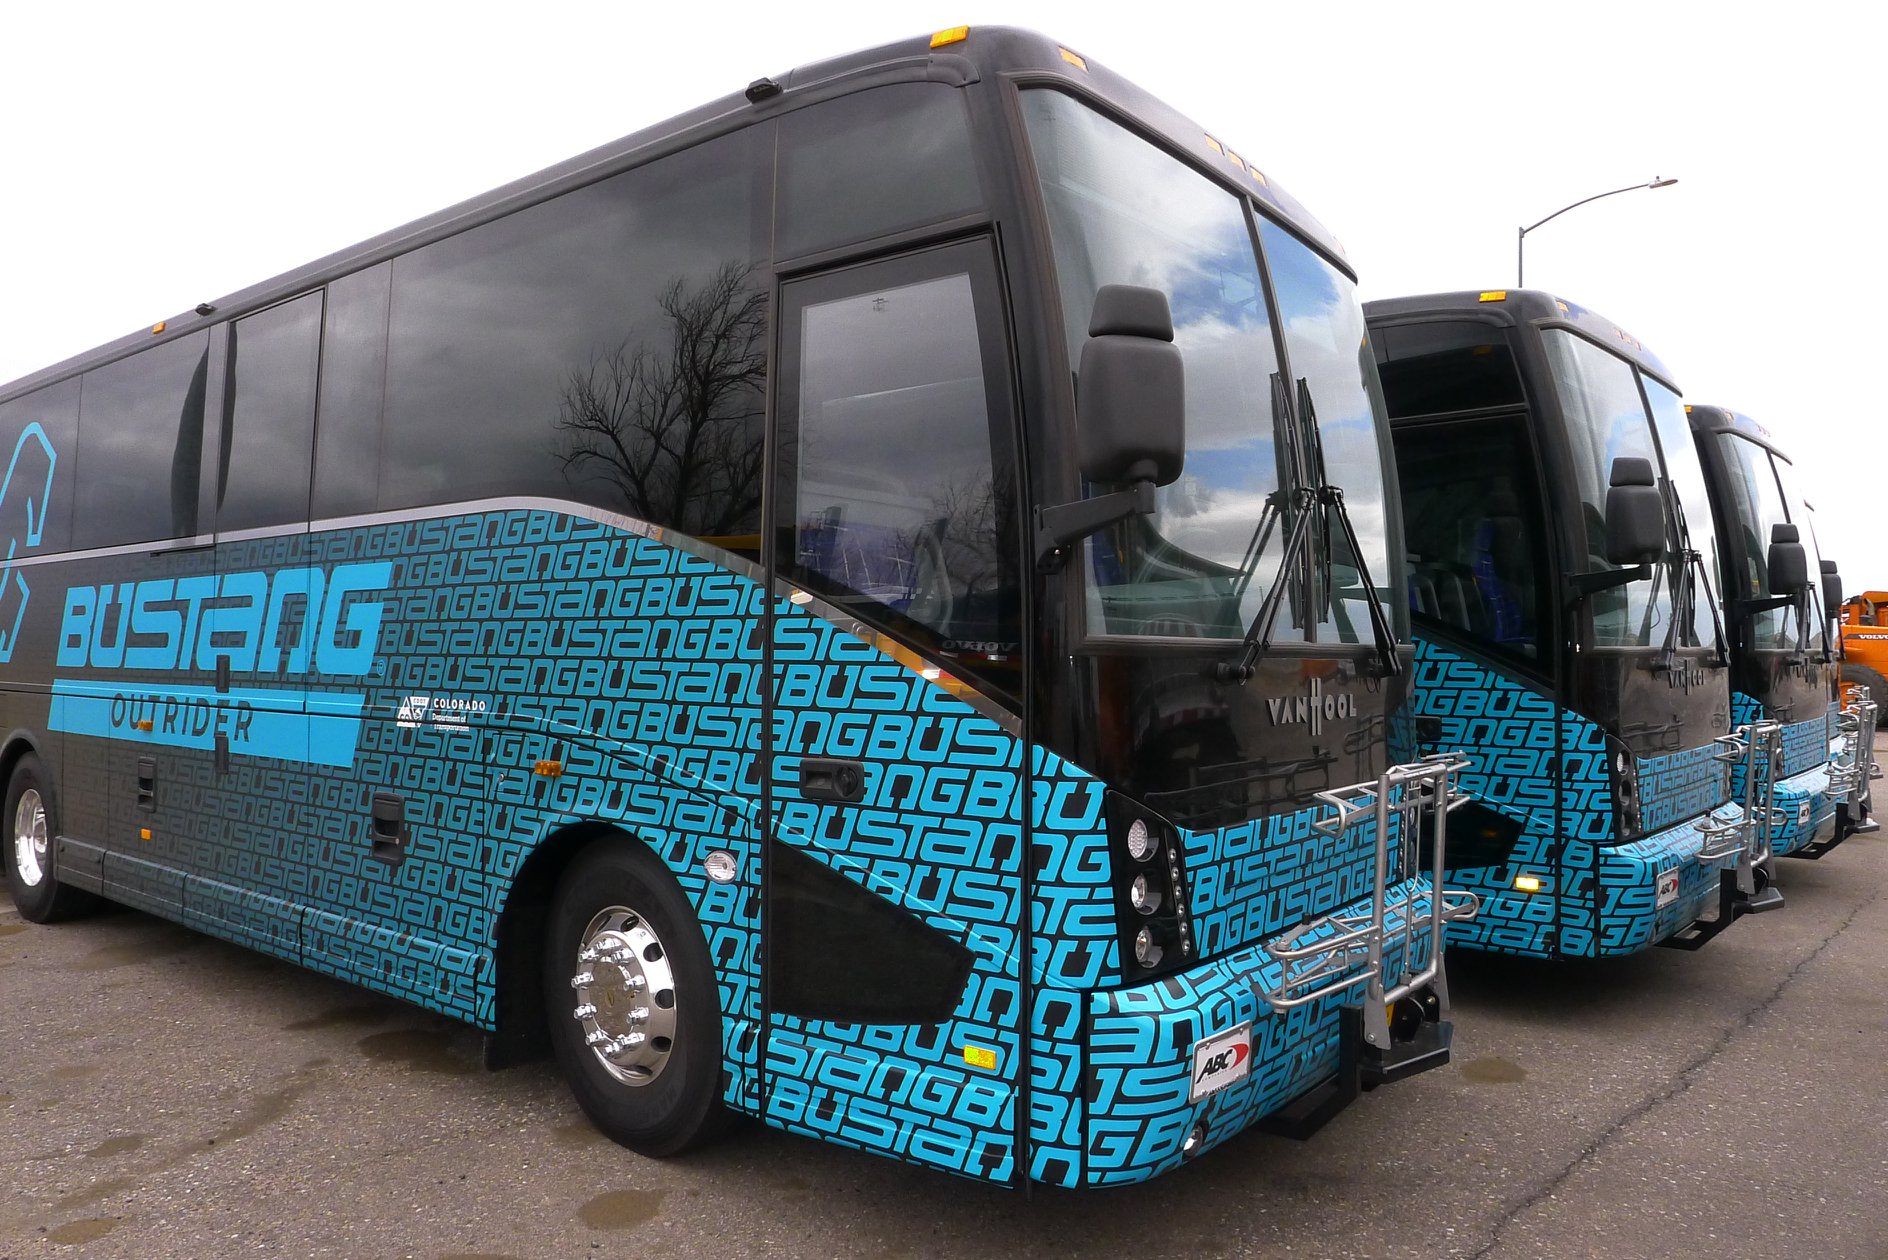 CDOT's Bustang Outrider service connects small towns in Colorado to larger cities.